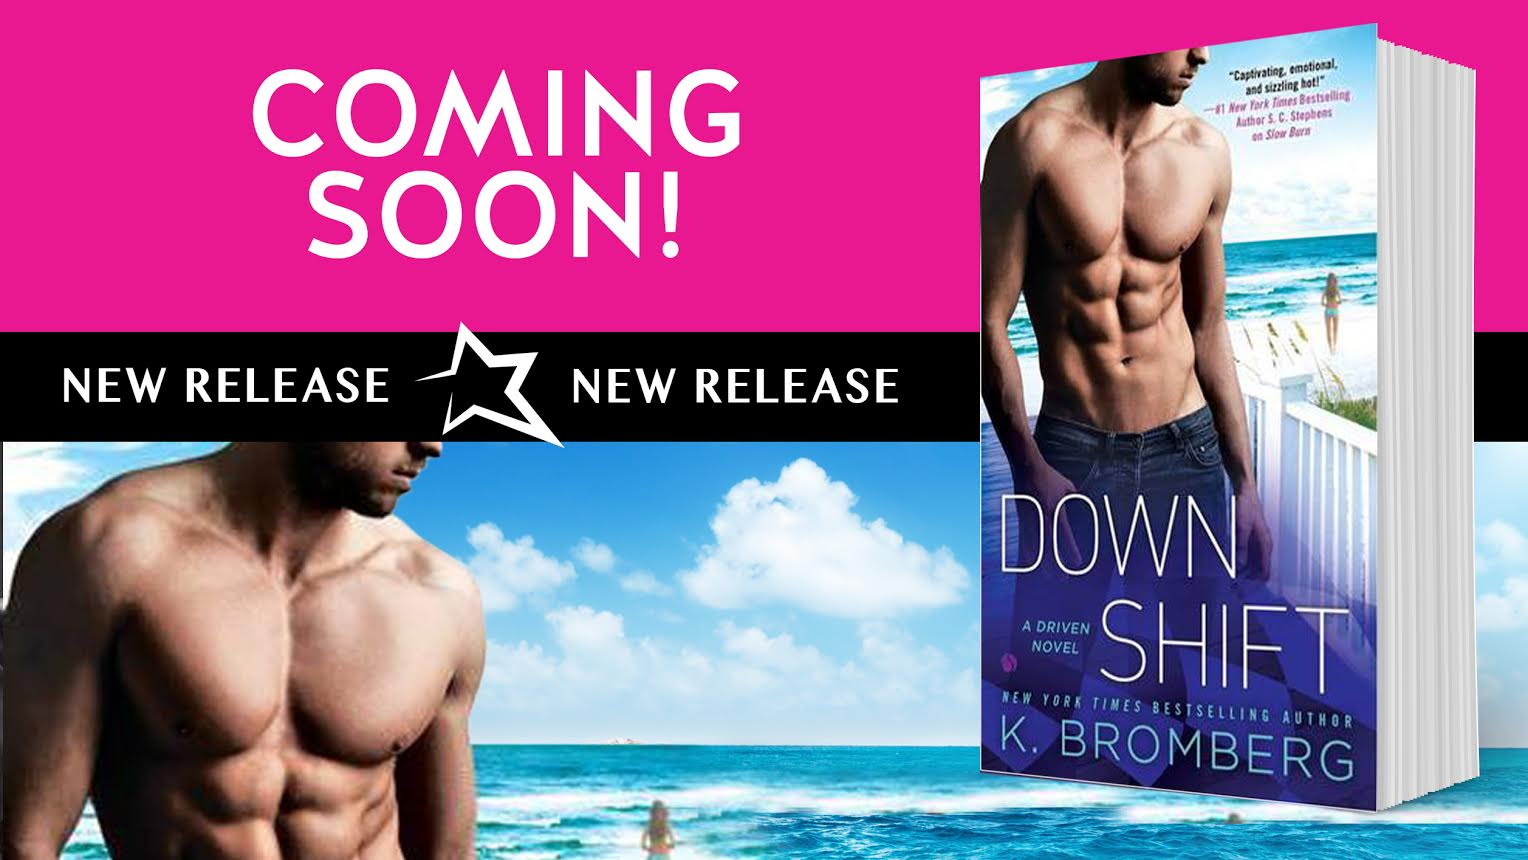 EXCERPT: Down Shift by K. Bromberg